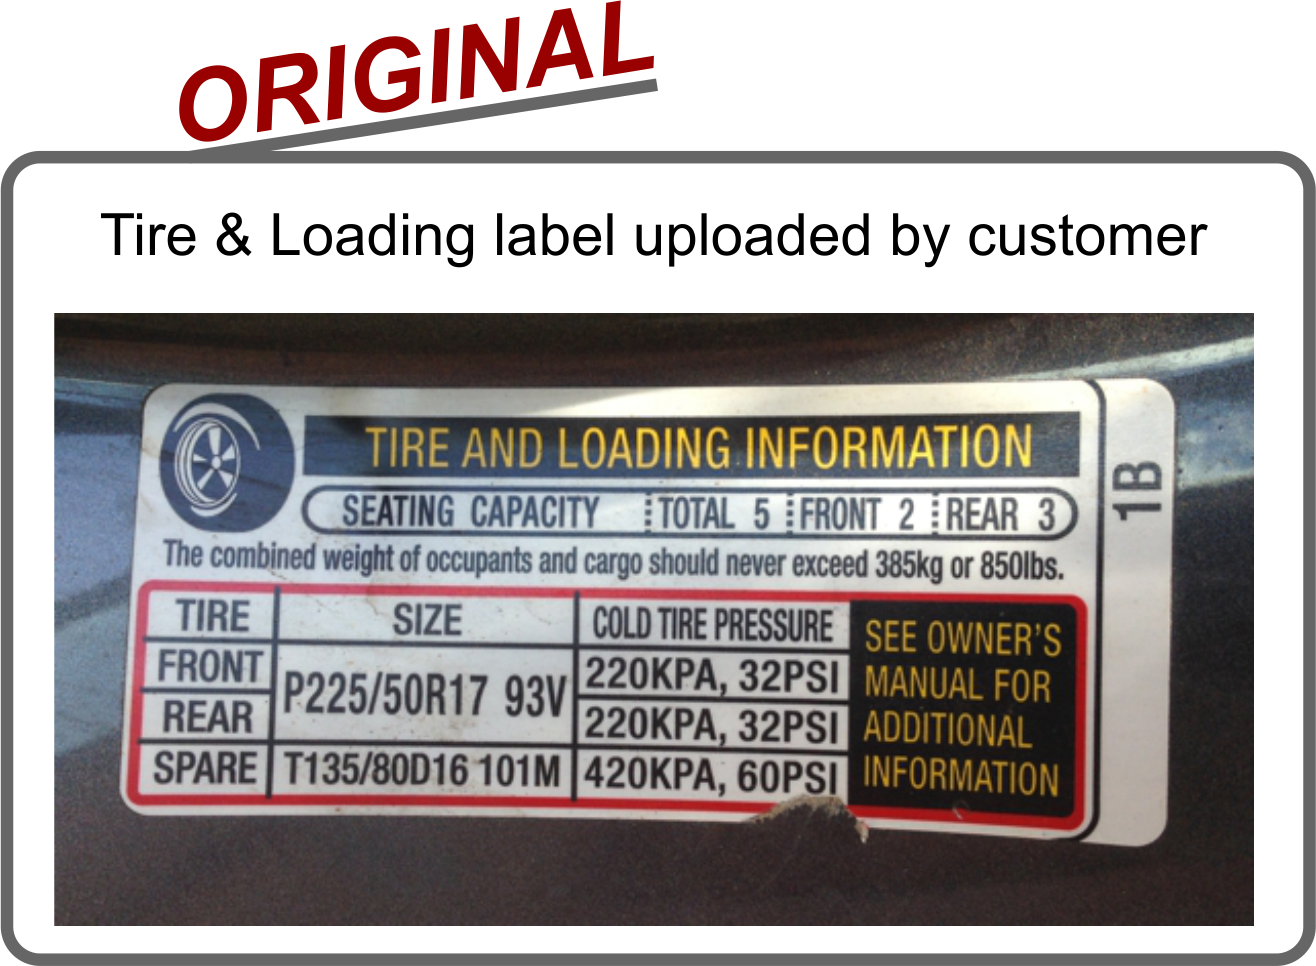 Tire and loading information replacement vin label